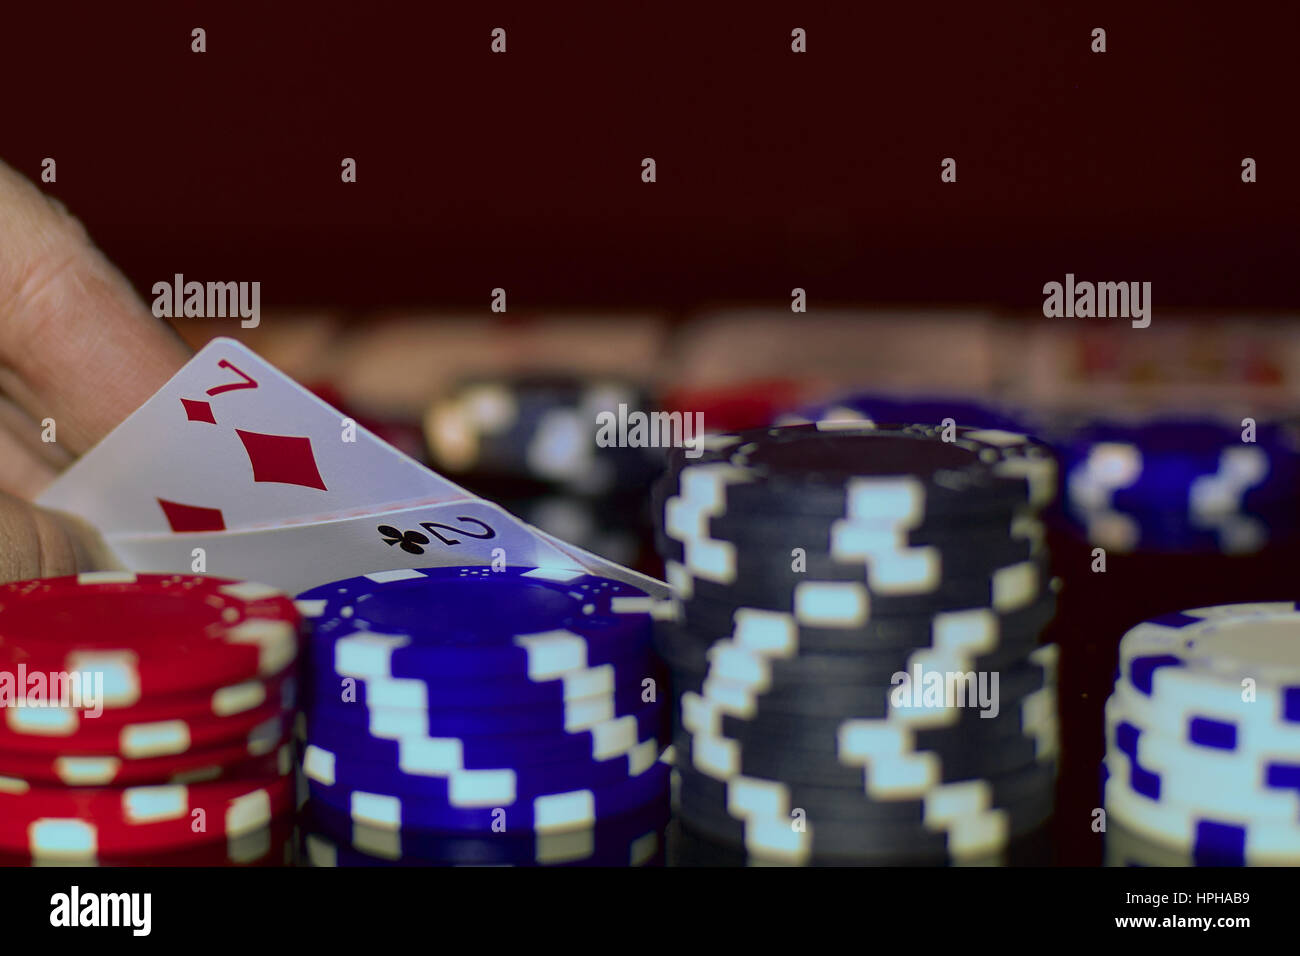 Bluffing in Texas hold'em. Poker player has very bad pocket cards. - Stock Image